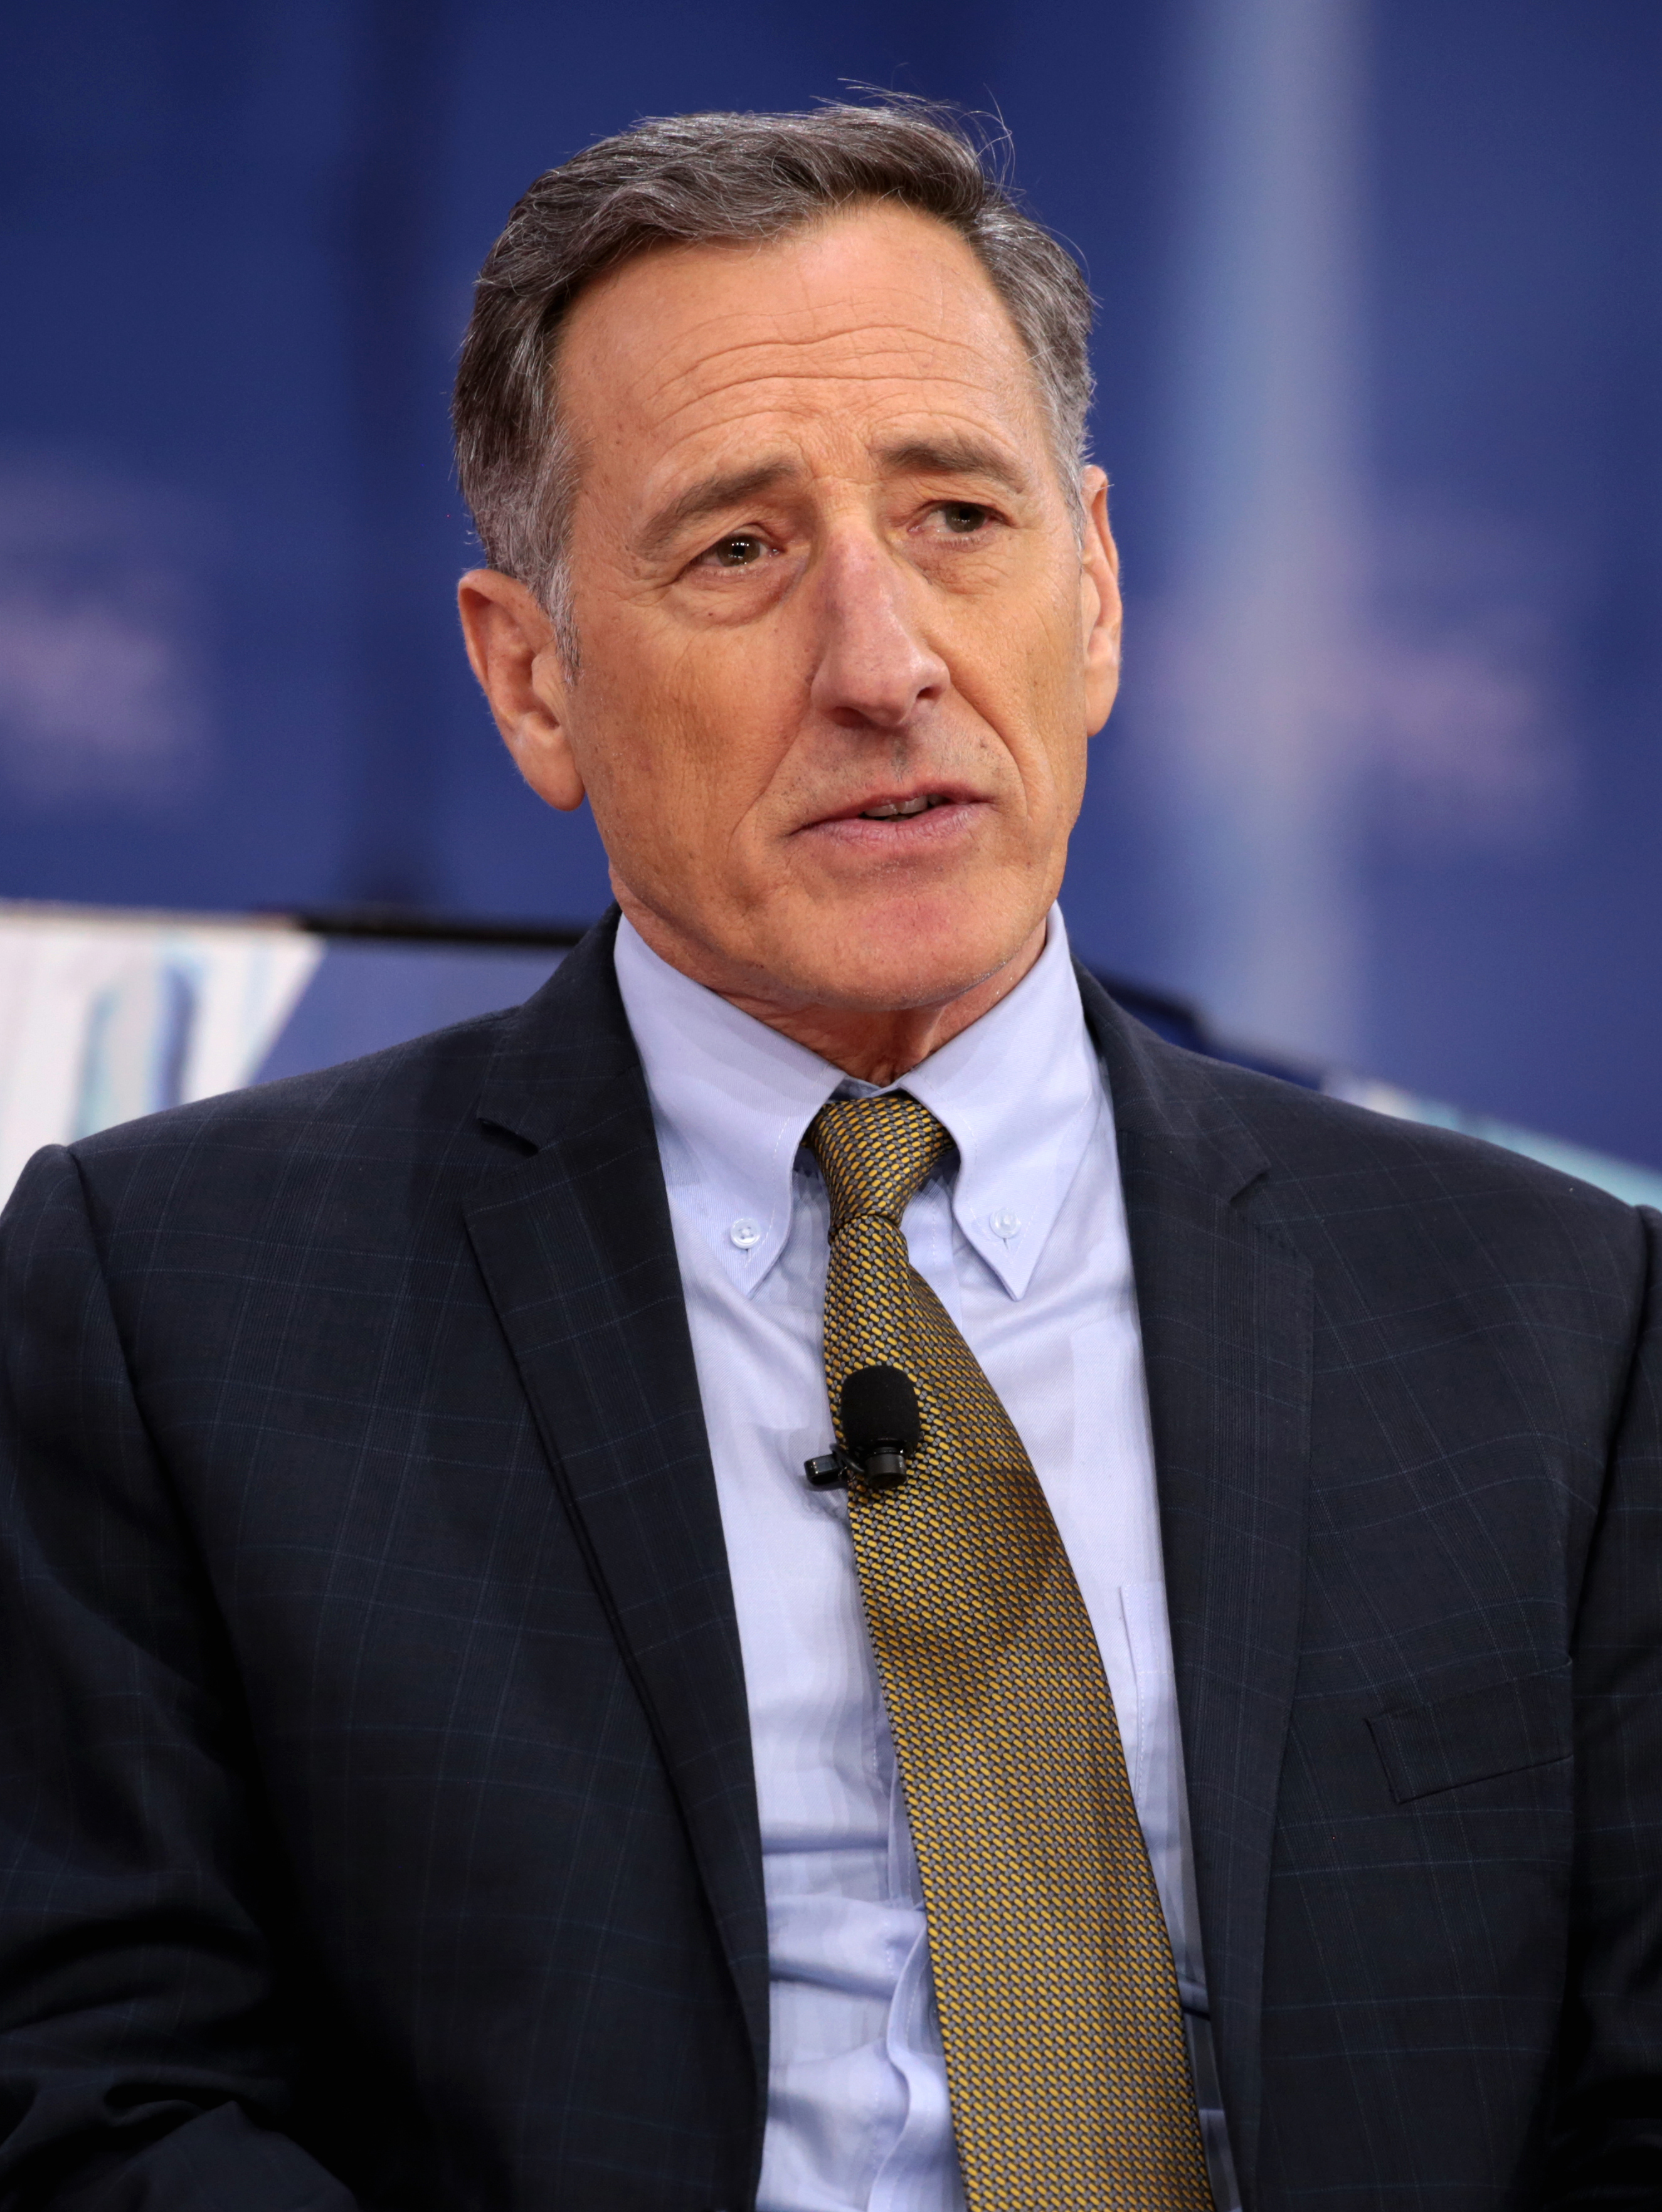 The 62-year old son of father (?) and mother(?) Peter Shumlin in 2018 photo. Peter Shumlin earned a  million dollar salary - leaving the net worth at 10 million in 2018